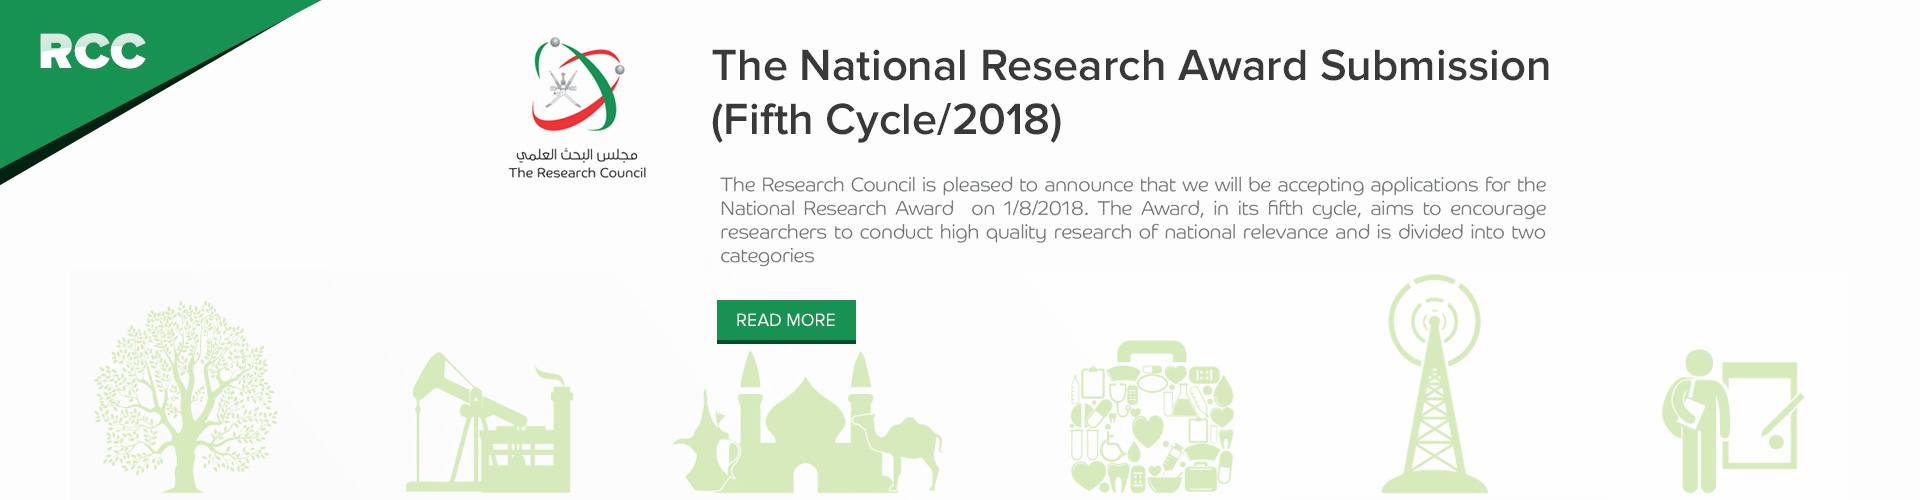 National Research Award Announcement 2018